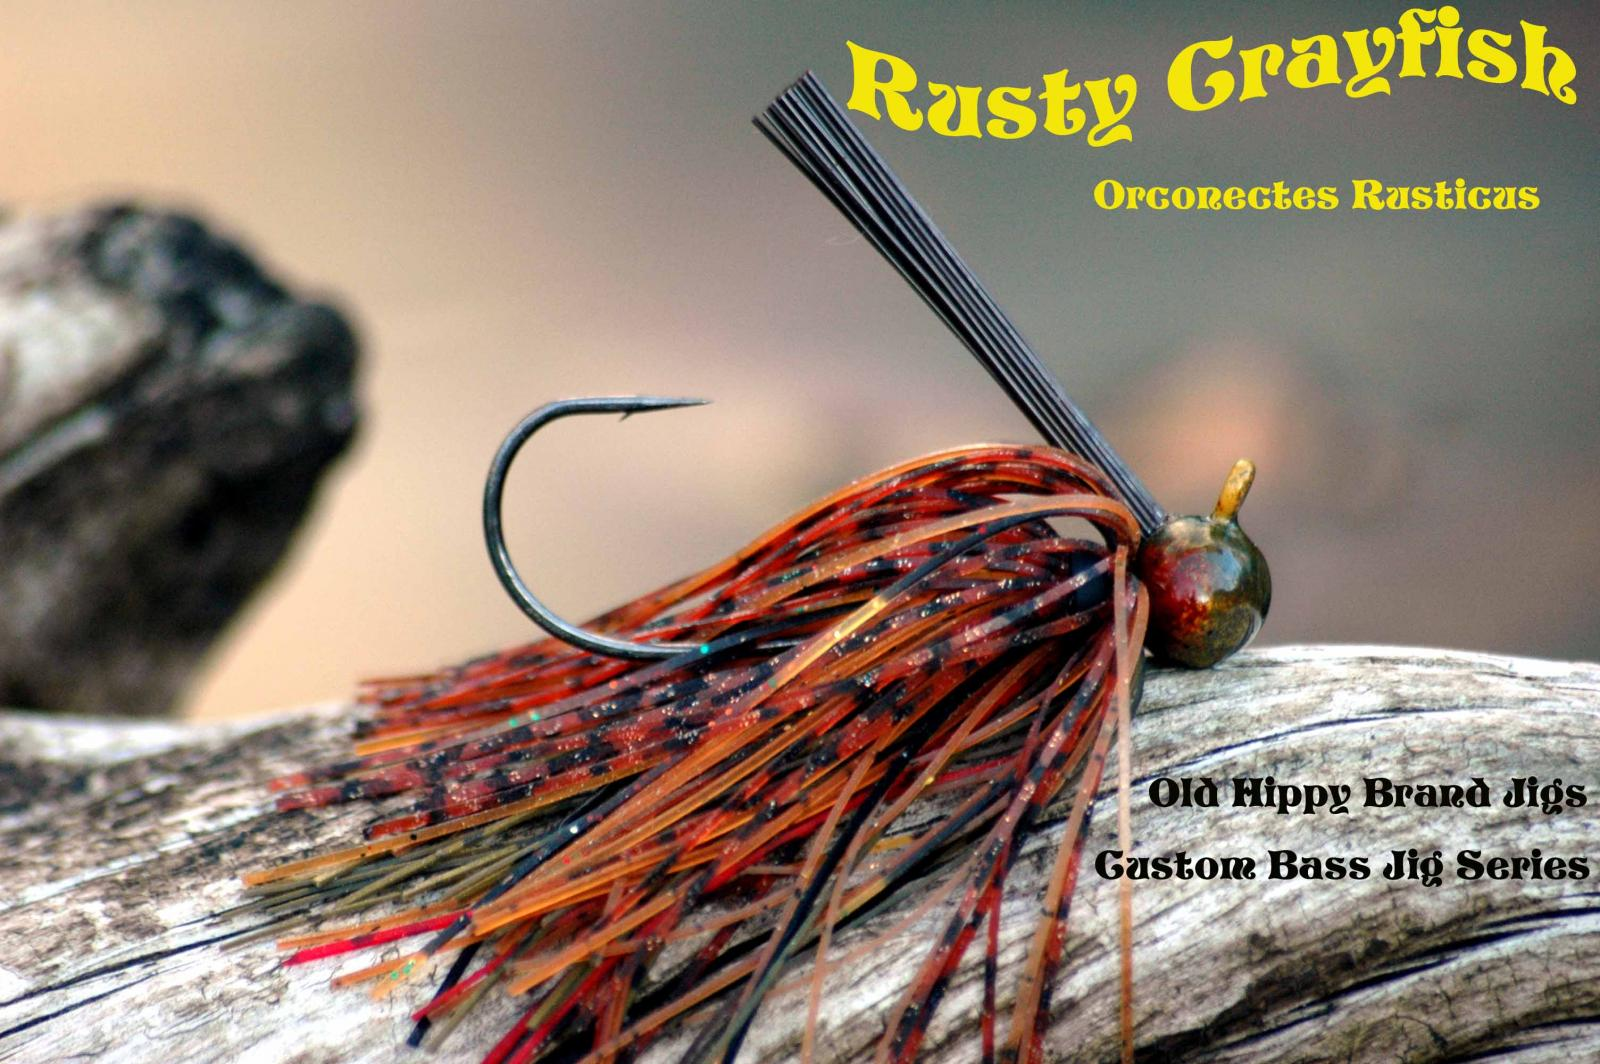 Old Hippy Brand Jig - Rusty Crayfish